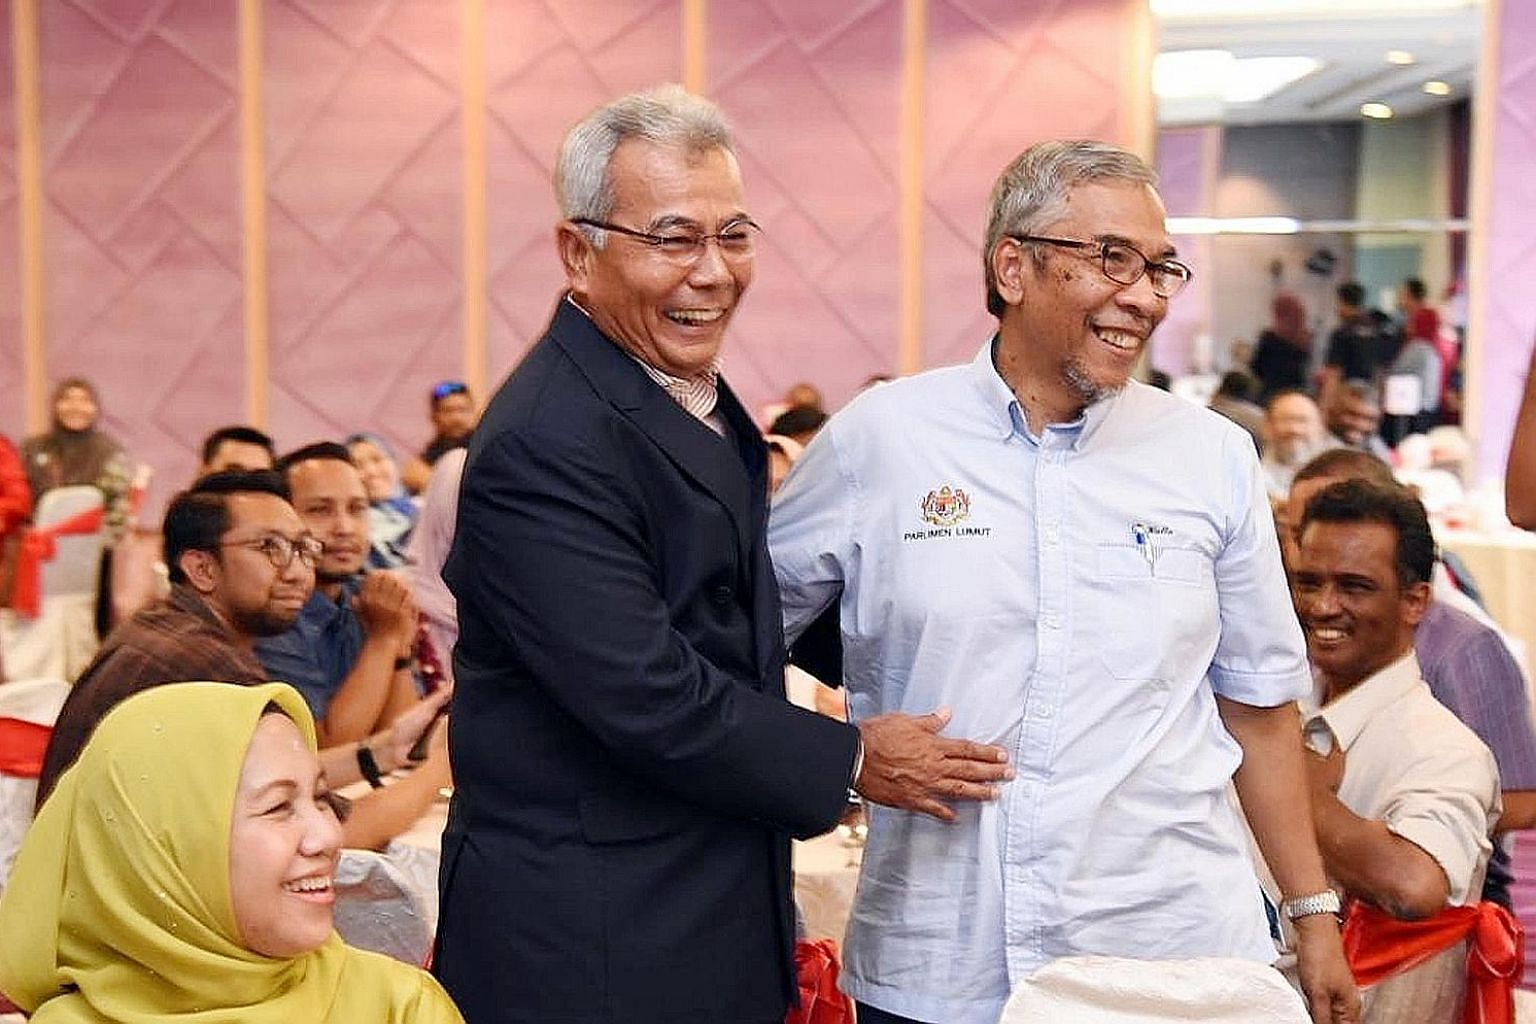 Former entrepreneur development minister Redzuan Yusof (left) and his former deputy minister Hatta Ramli at a ministry function last Thursday that was also attended by a confirmed coronavirus patient.